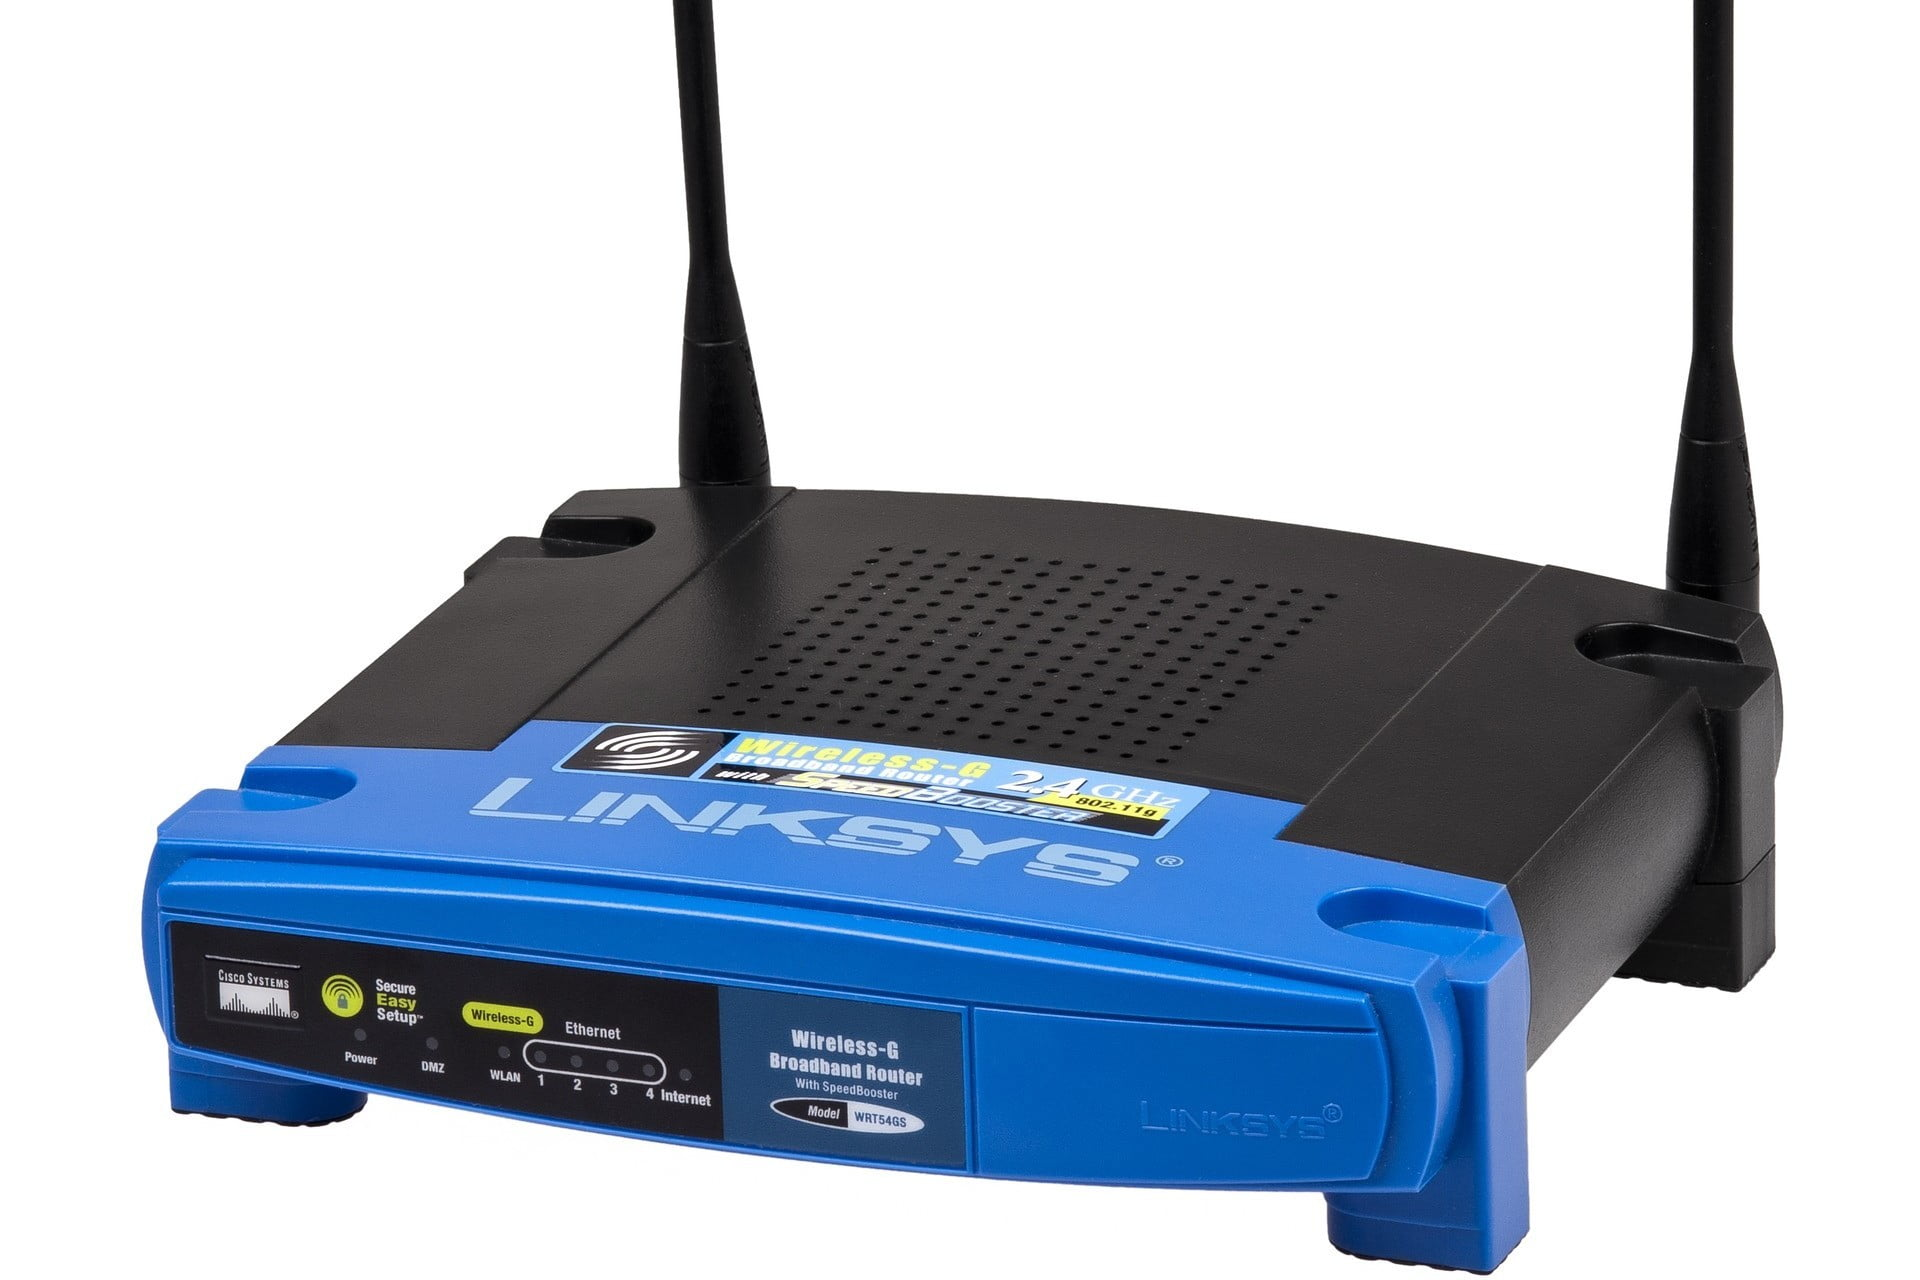 Stock image of linksys wireless router